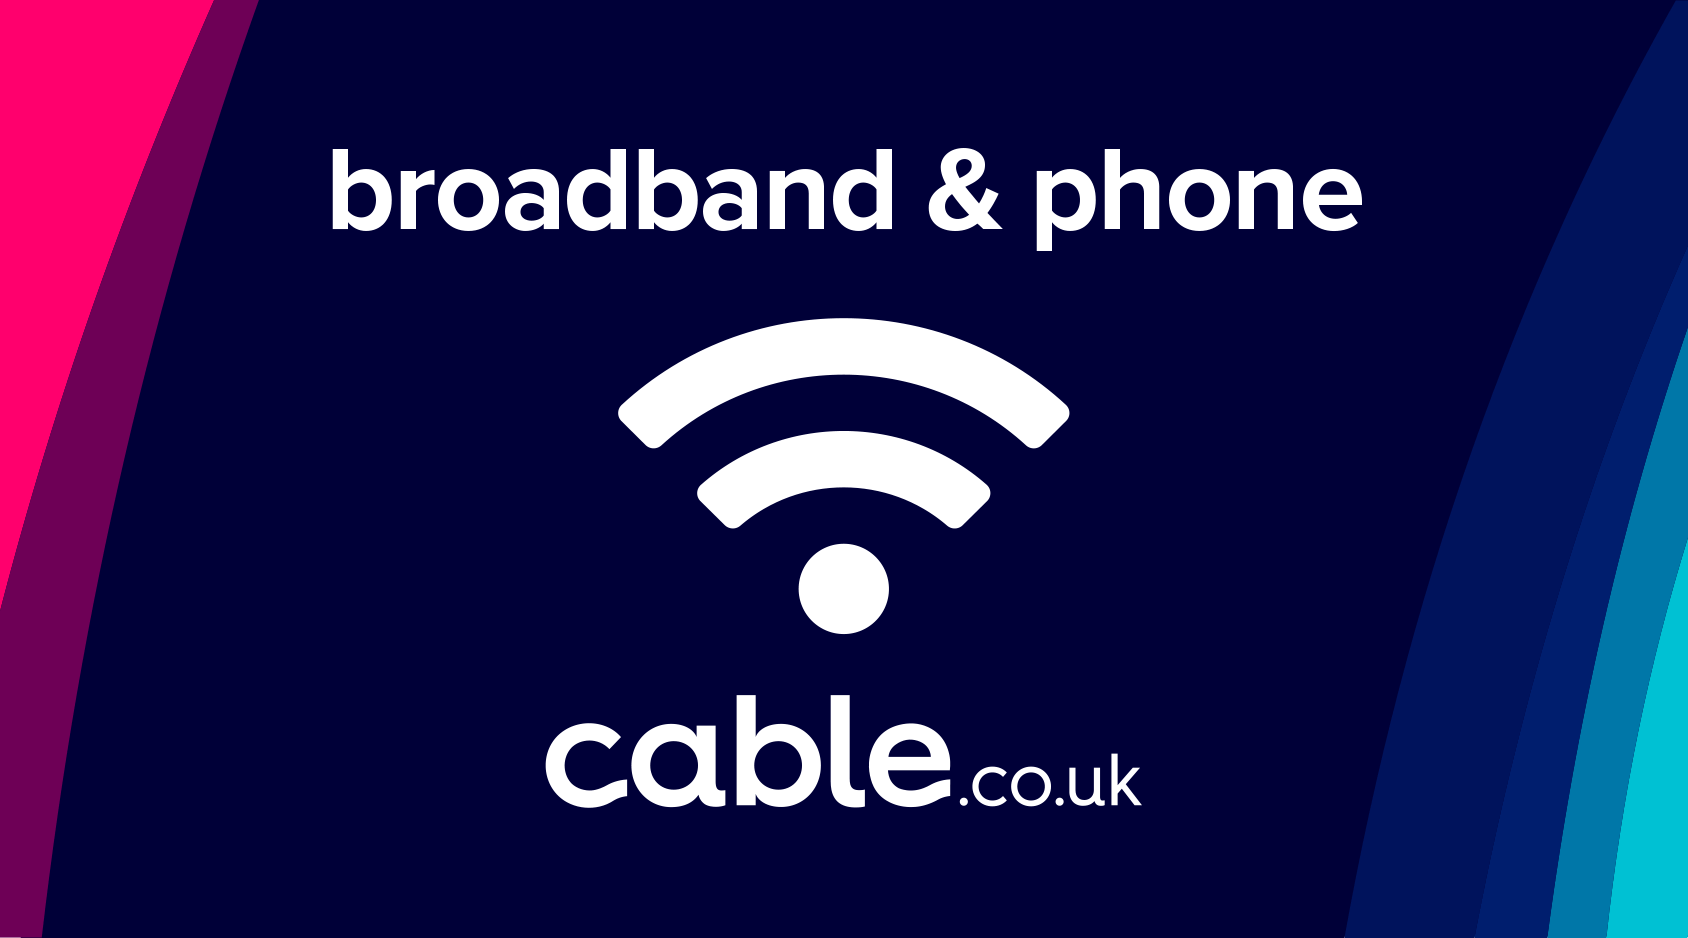 Best broadband and phone deals – Cable.co.uk